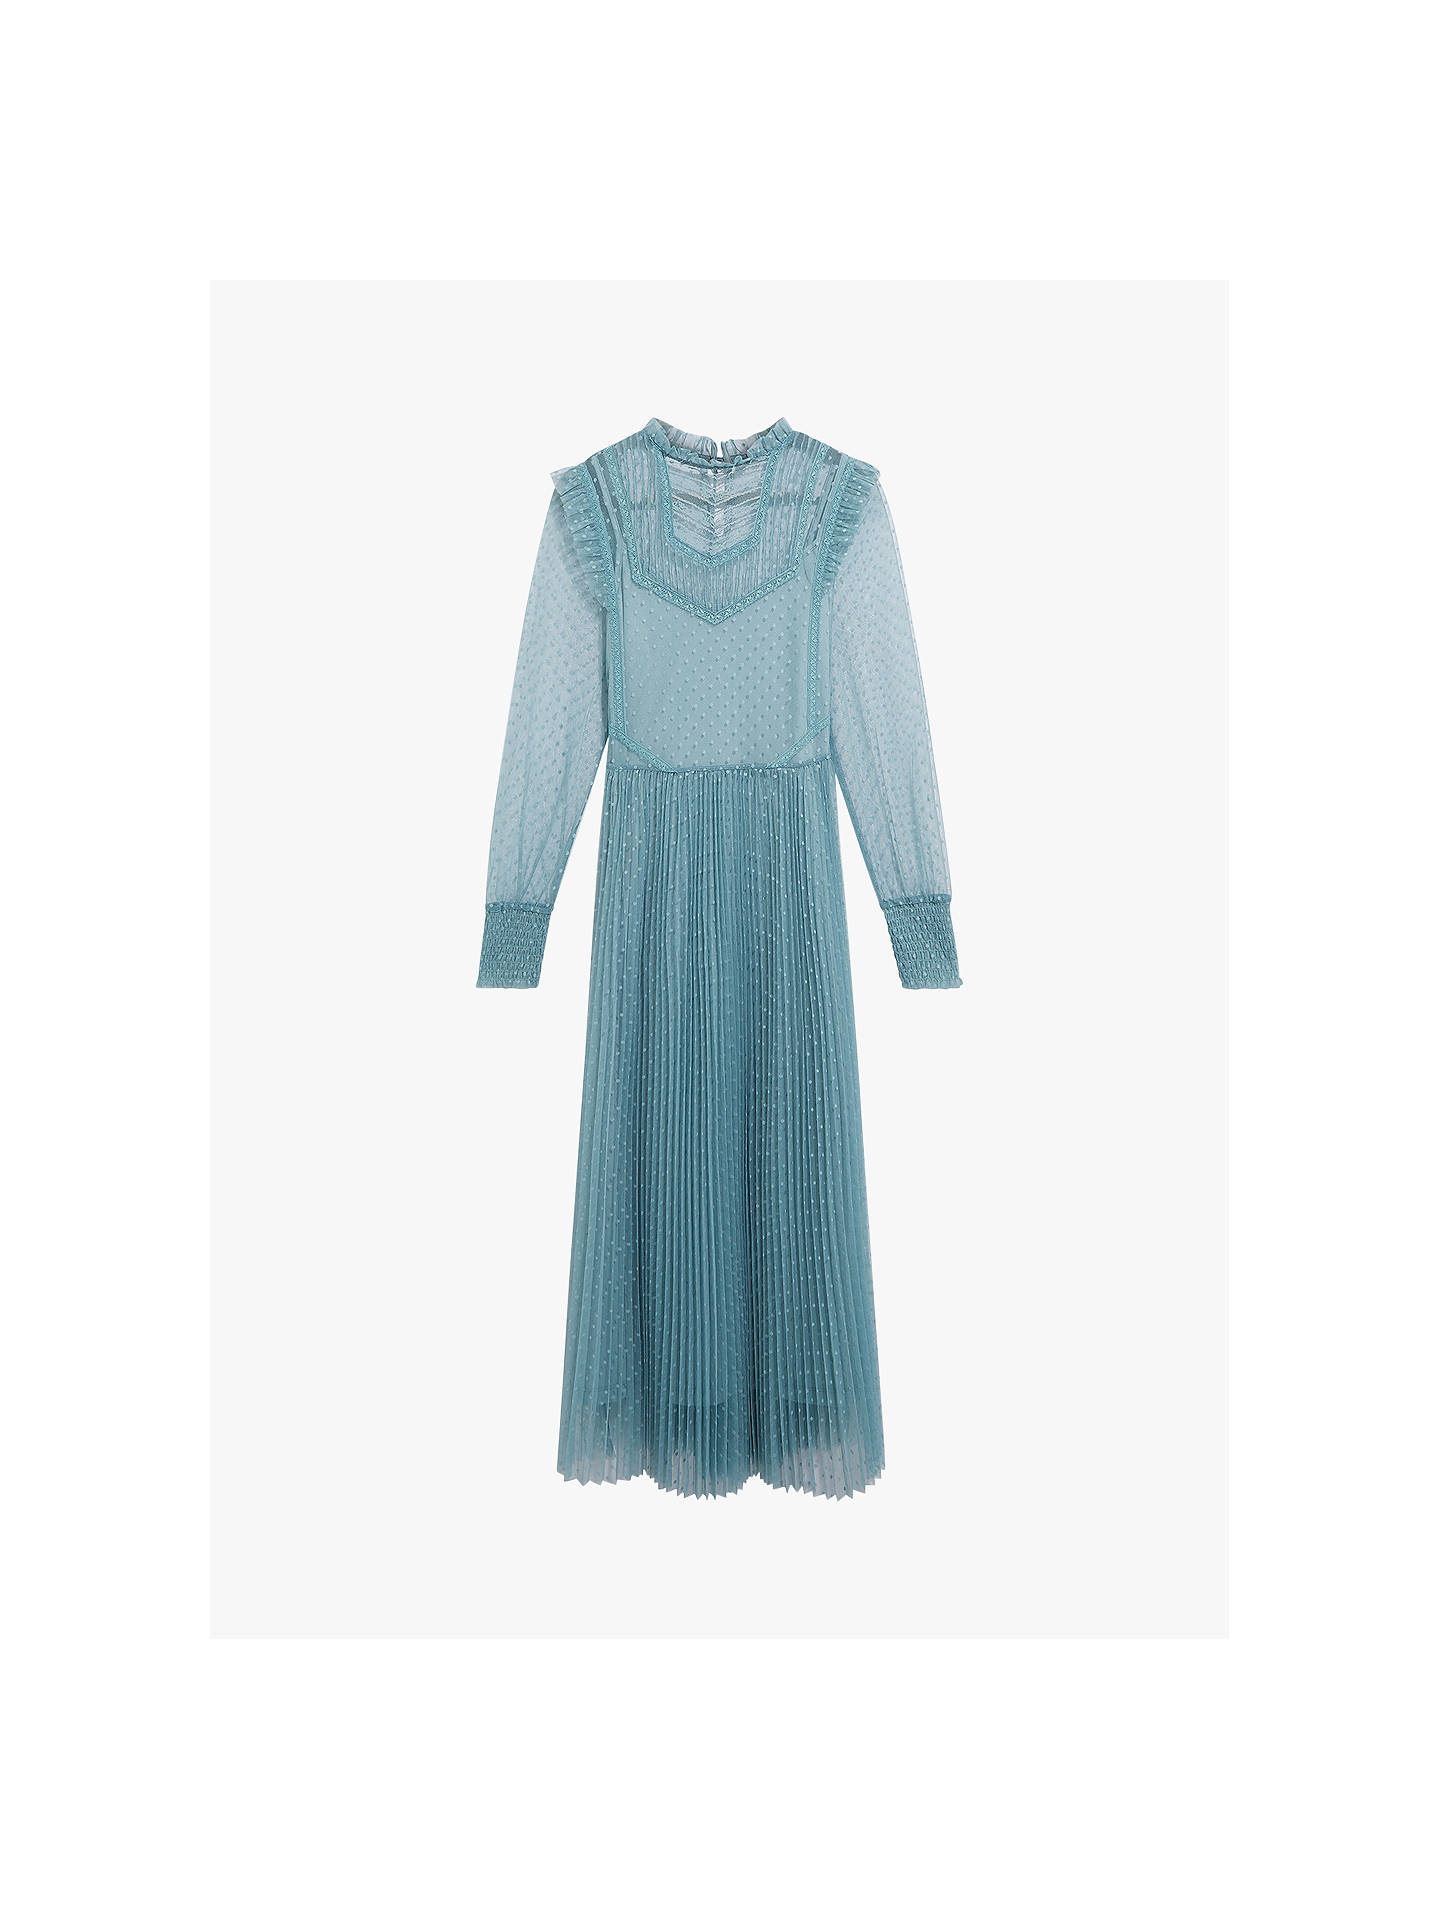 Buy Oasis Mesh Tulle Dress, Pale Green, M Online at johnlewis.com